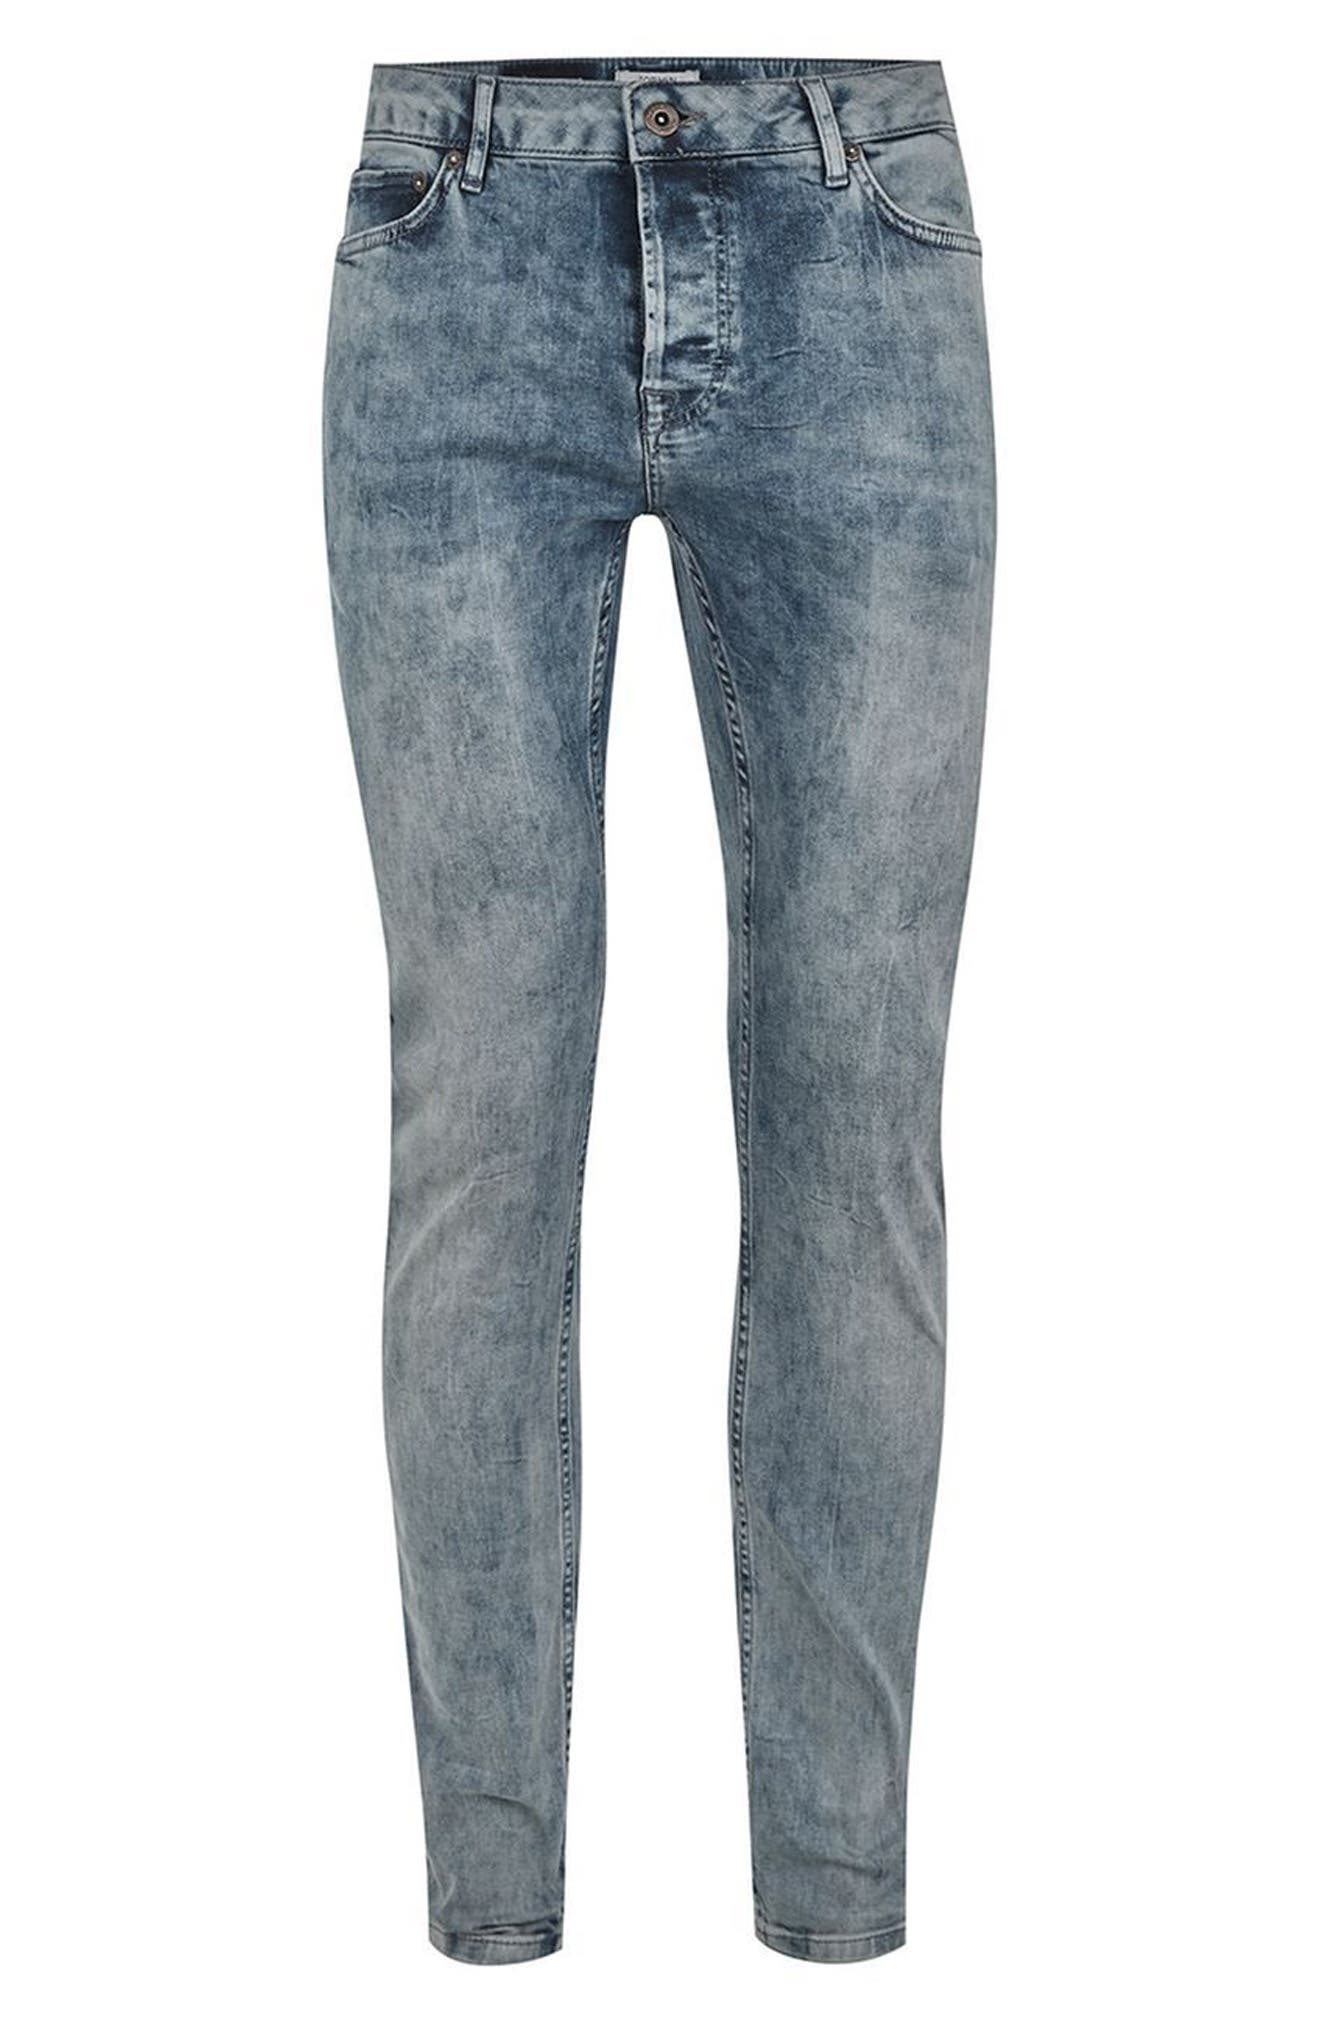 Stretch Skinny Fit Jeans,                             Alternate thumbnail 4, color,                             Grey